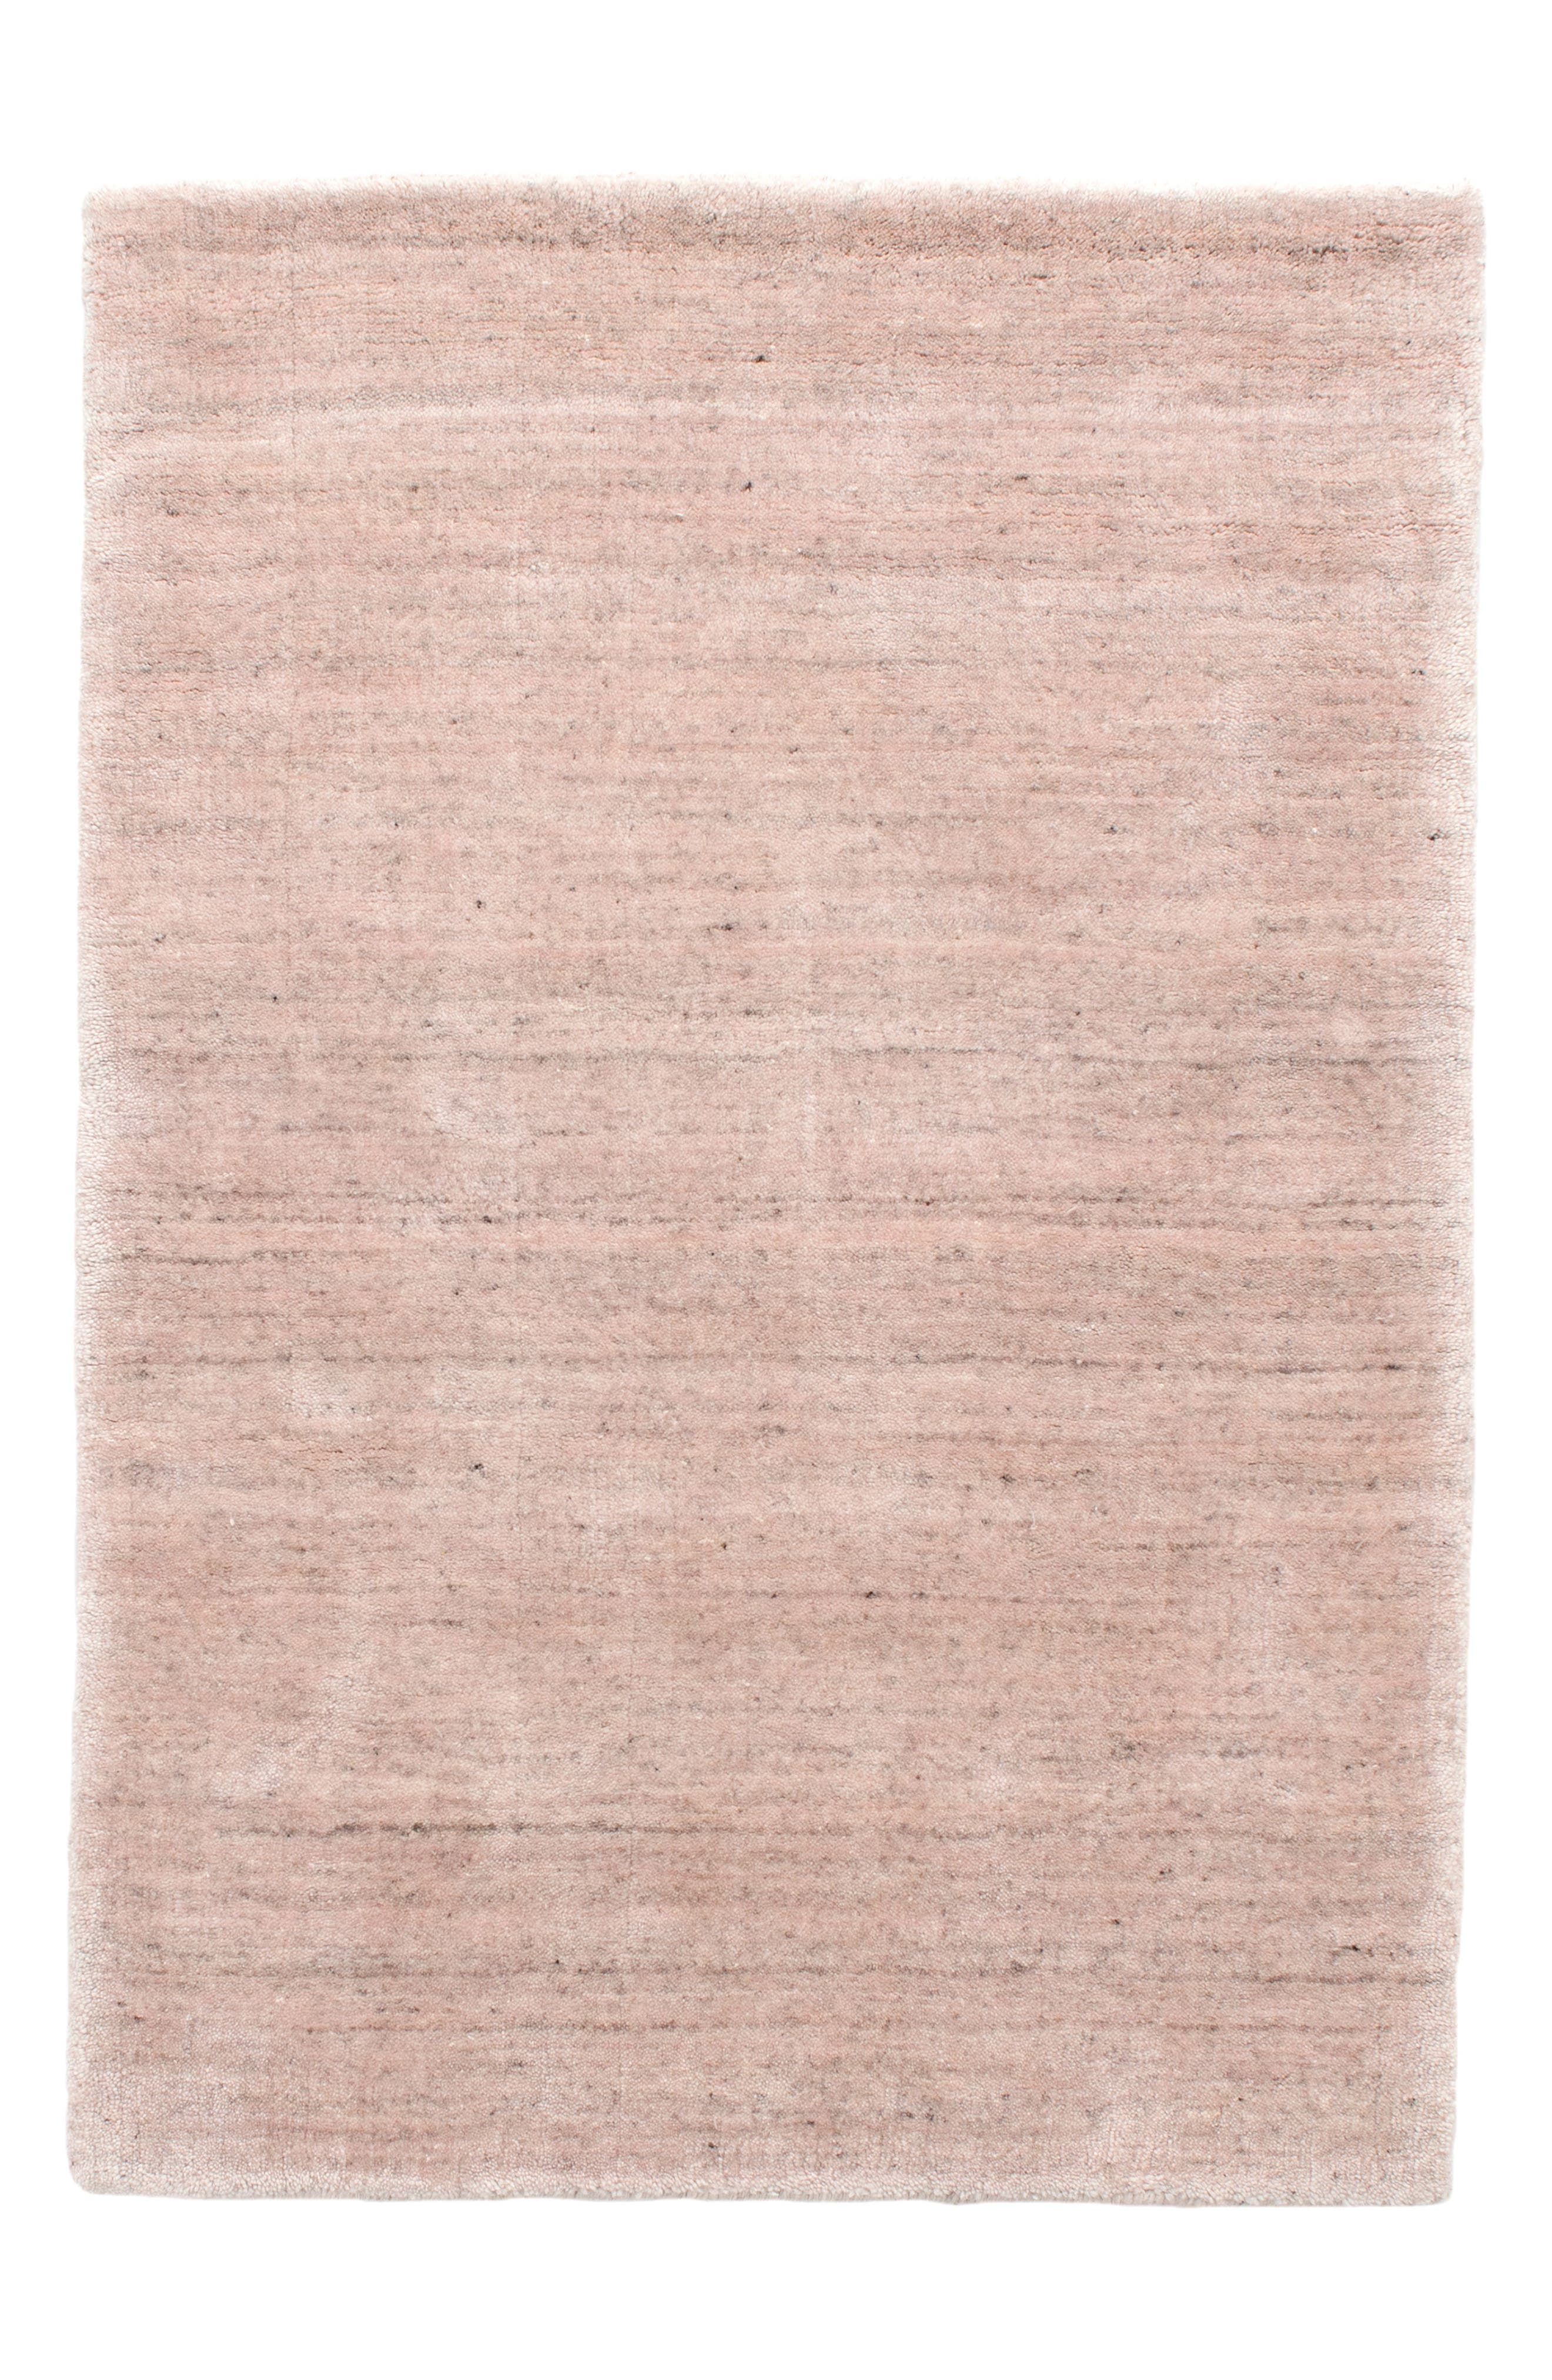 Icelandia Slipper Hand Knotted Rug,                         Main,                         color, 650